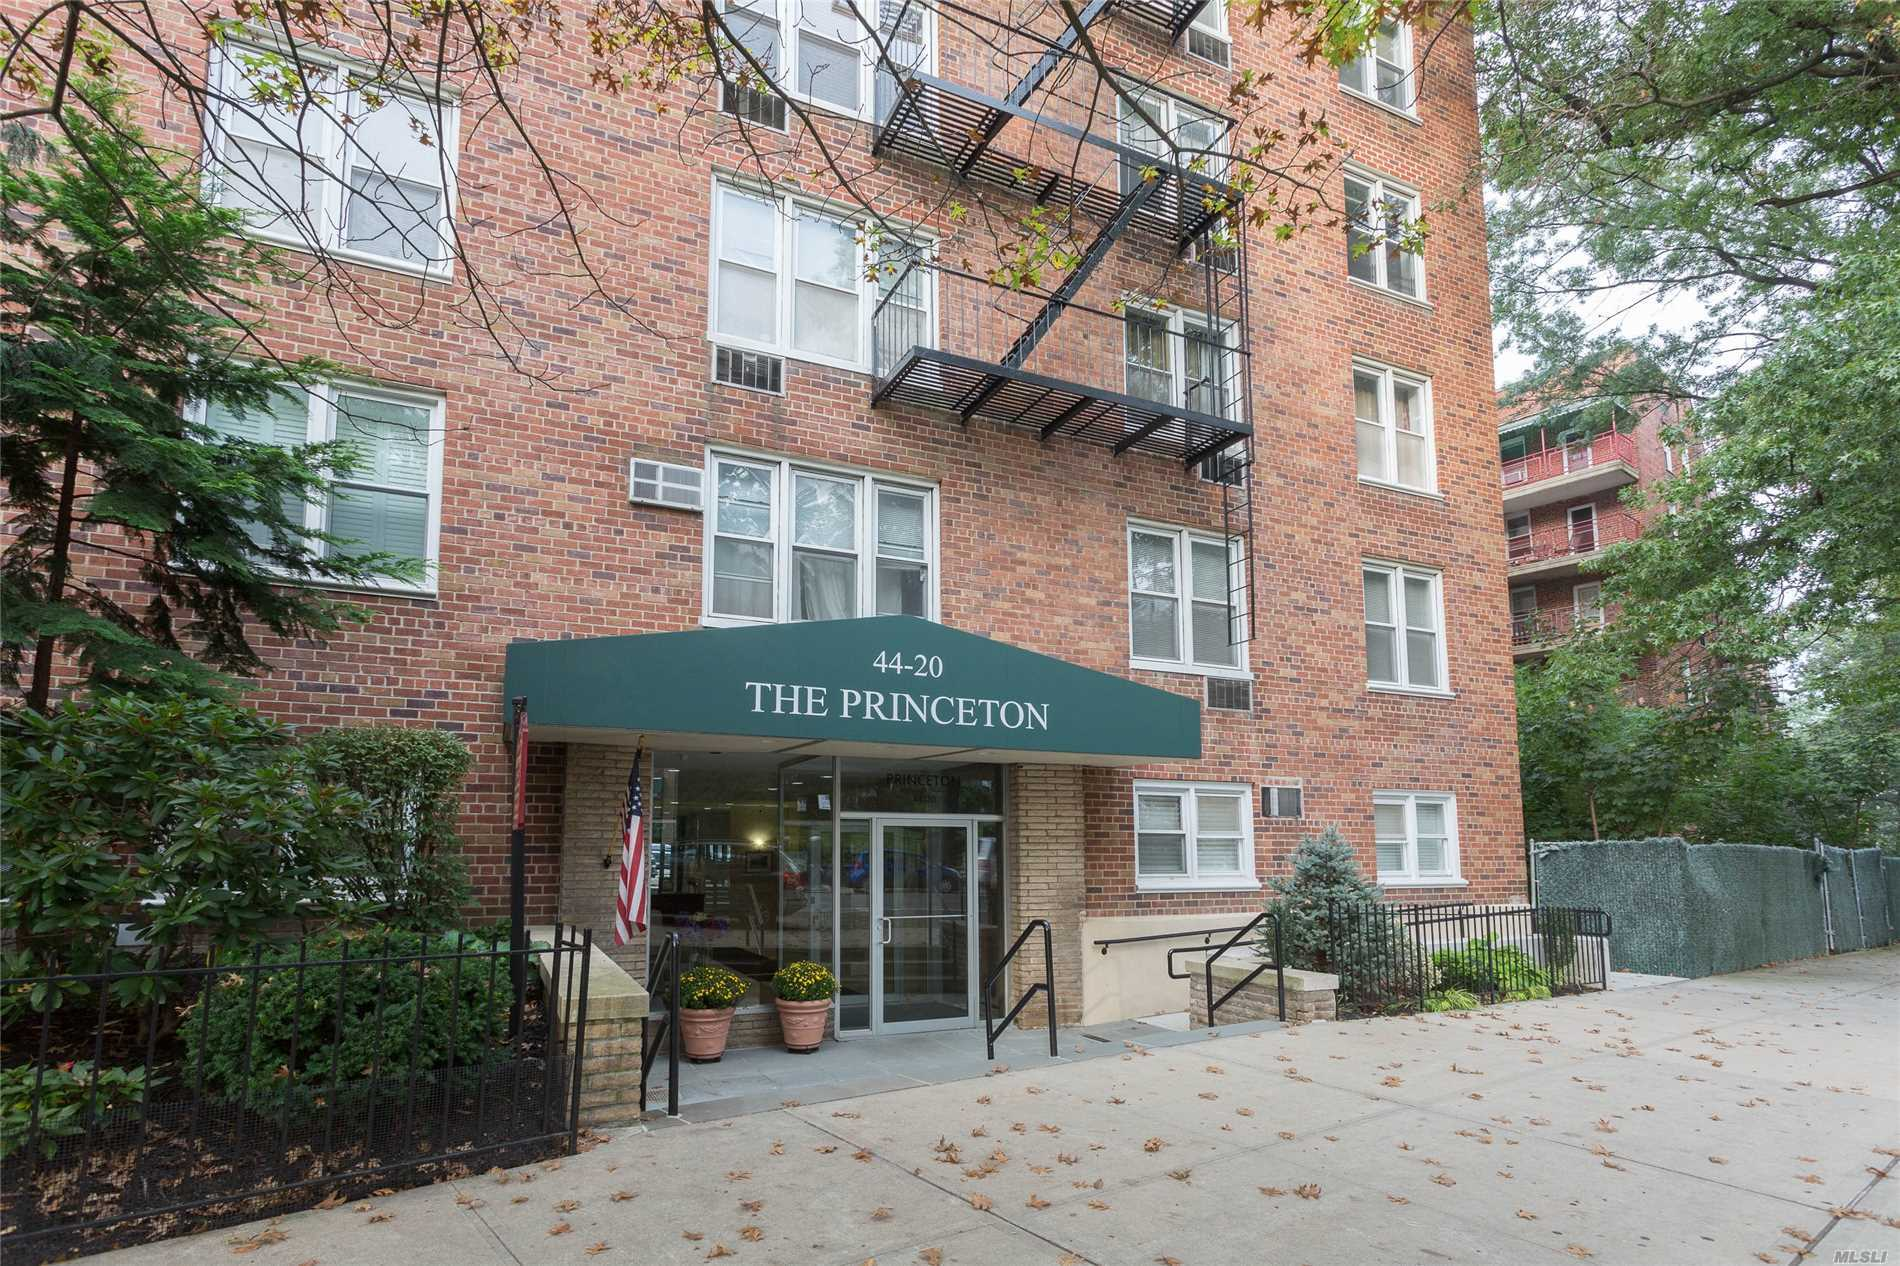 Location, Location, Location! Stunningly Renovated 1 Bedroom Apt, Absolutely Turnkey. Newly Renovated Kitchen And Baths, Beautiful Moldings Through Out, Tasteful Built Ins! New Hardwood Floors And Recessed Lighting! Parking Spot Included! Too Many Features To List. Just A Few Mins From Lirr, Less Than 30 Mins To Midtown. Close To Shopping, Transportation, Restaurants, And Highways! Will Not Last!